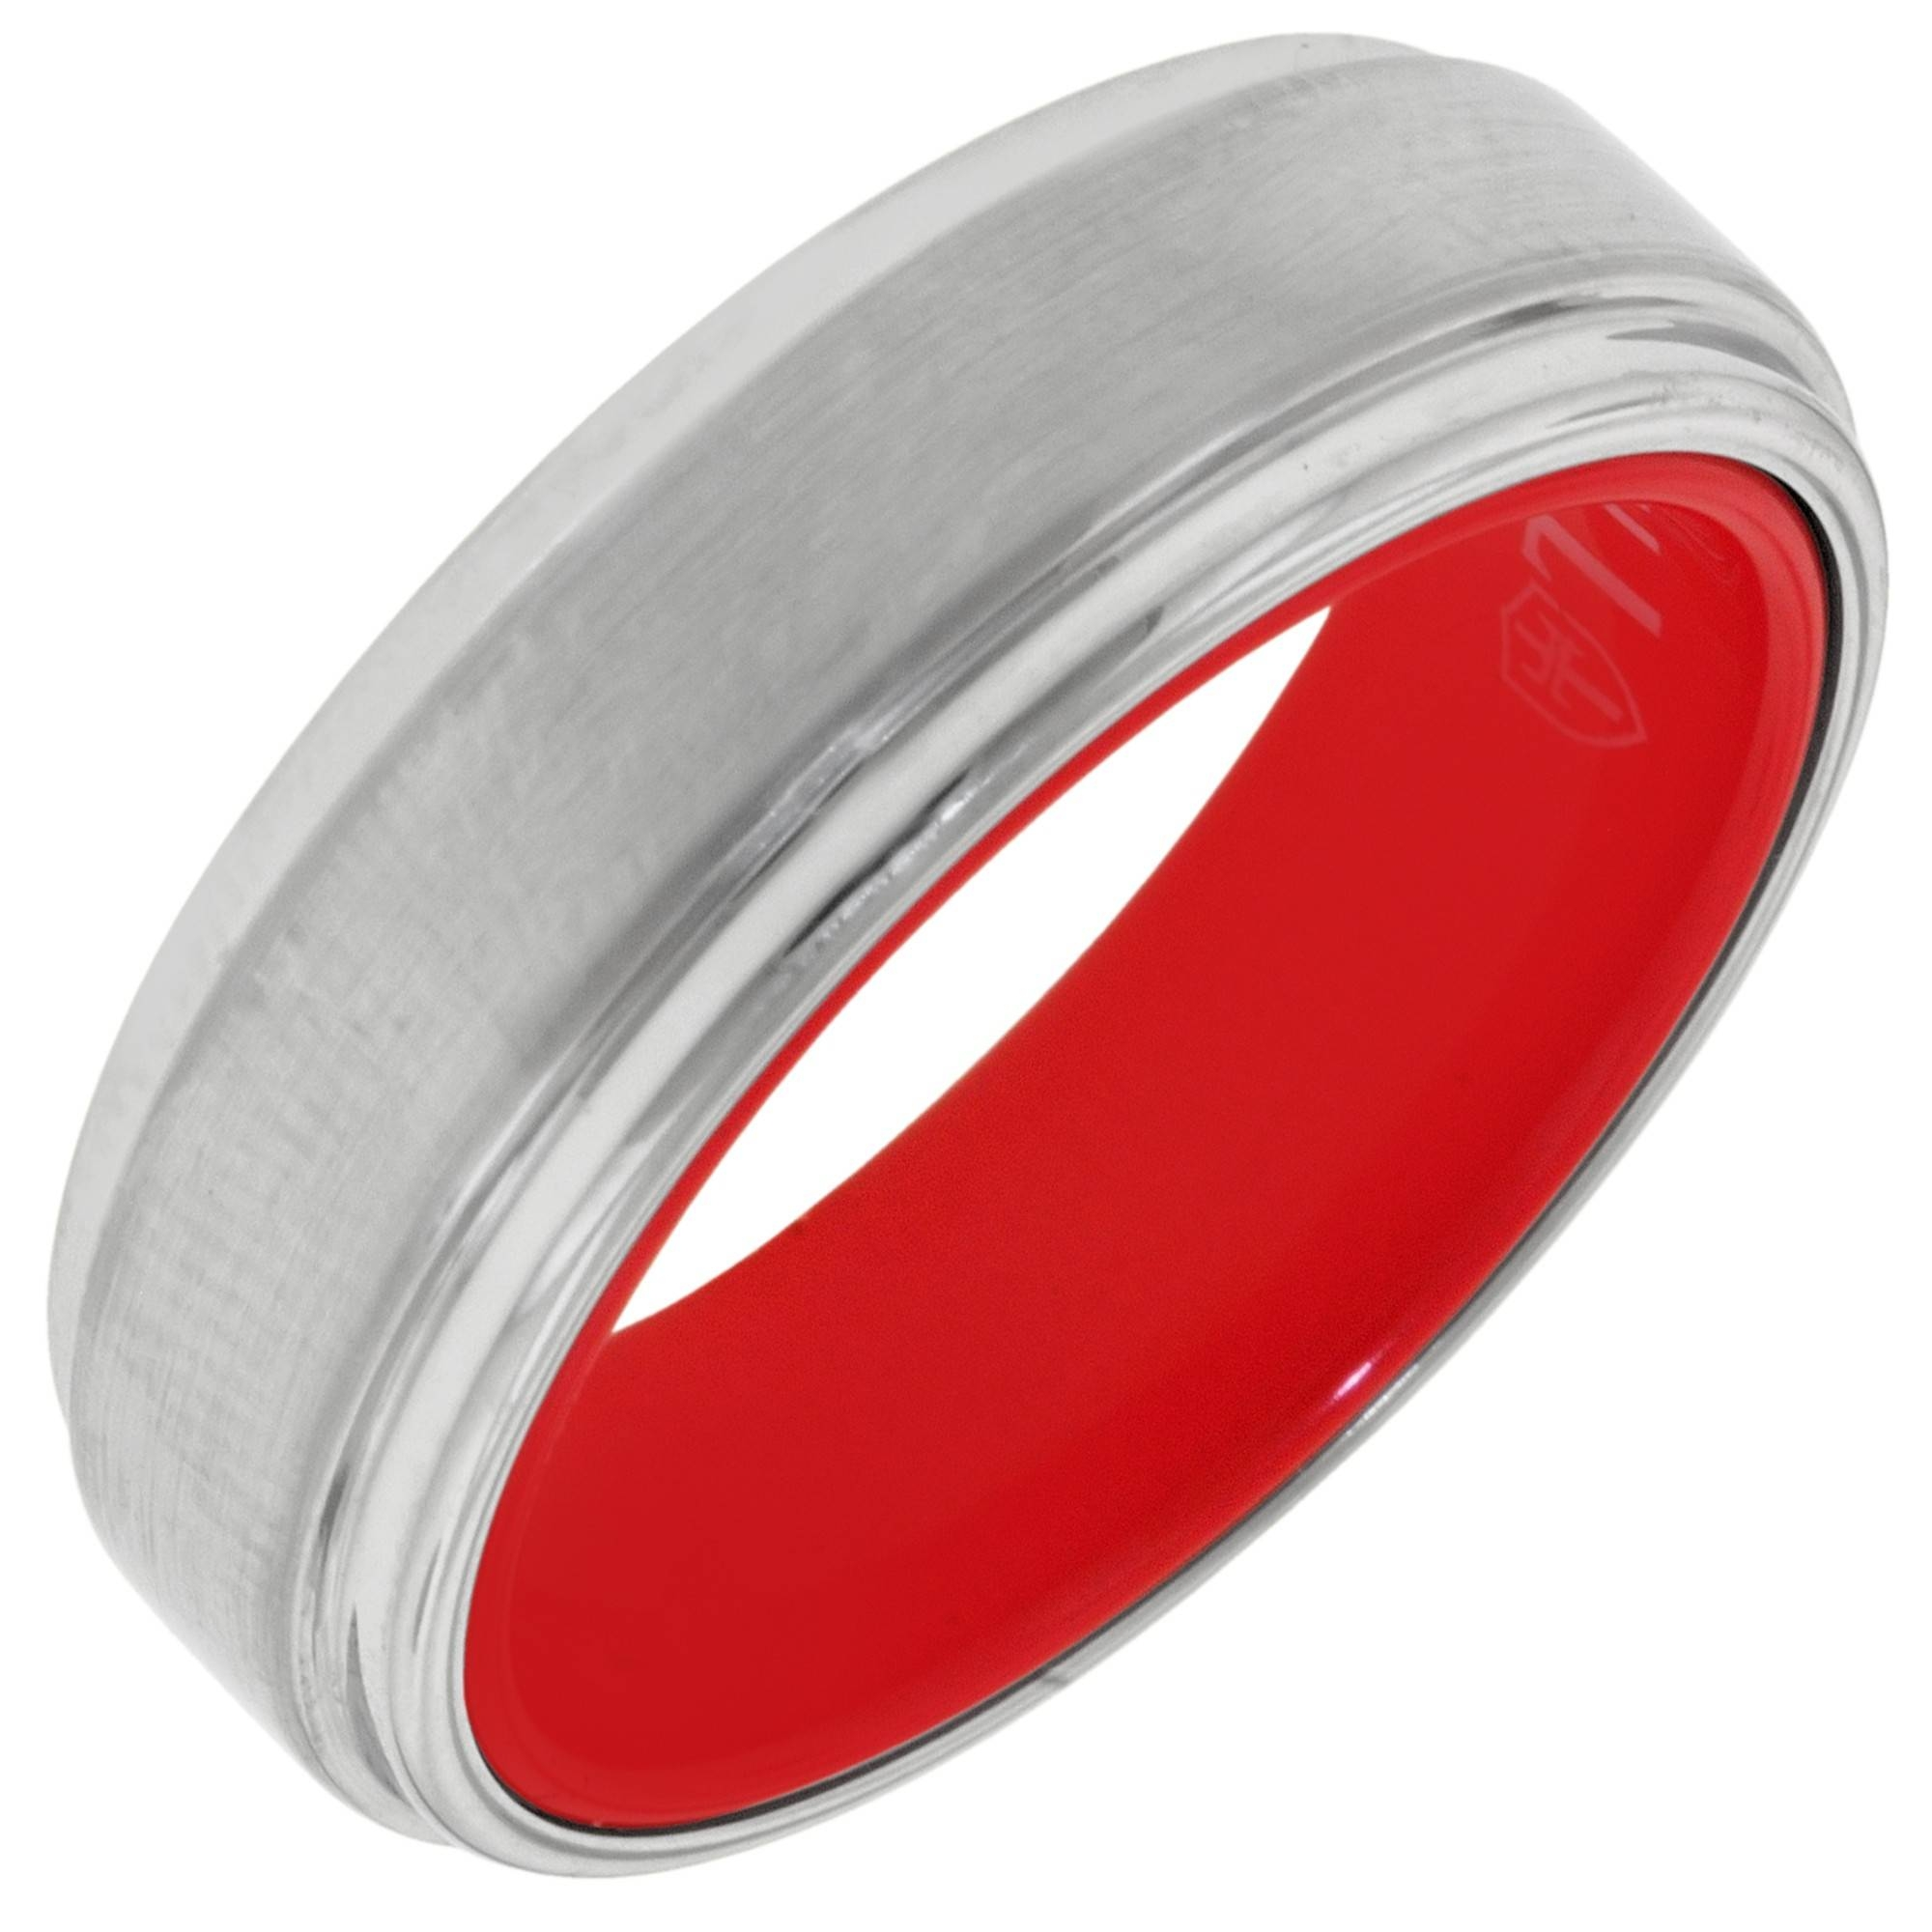 Mens Tungsten Wedding Band With Red Inside (7Mm) With 7Mm Tungsten Wedding Bands (View 13 of 15)